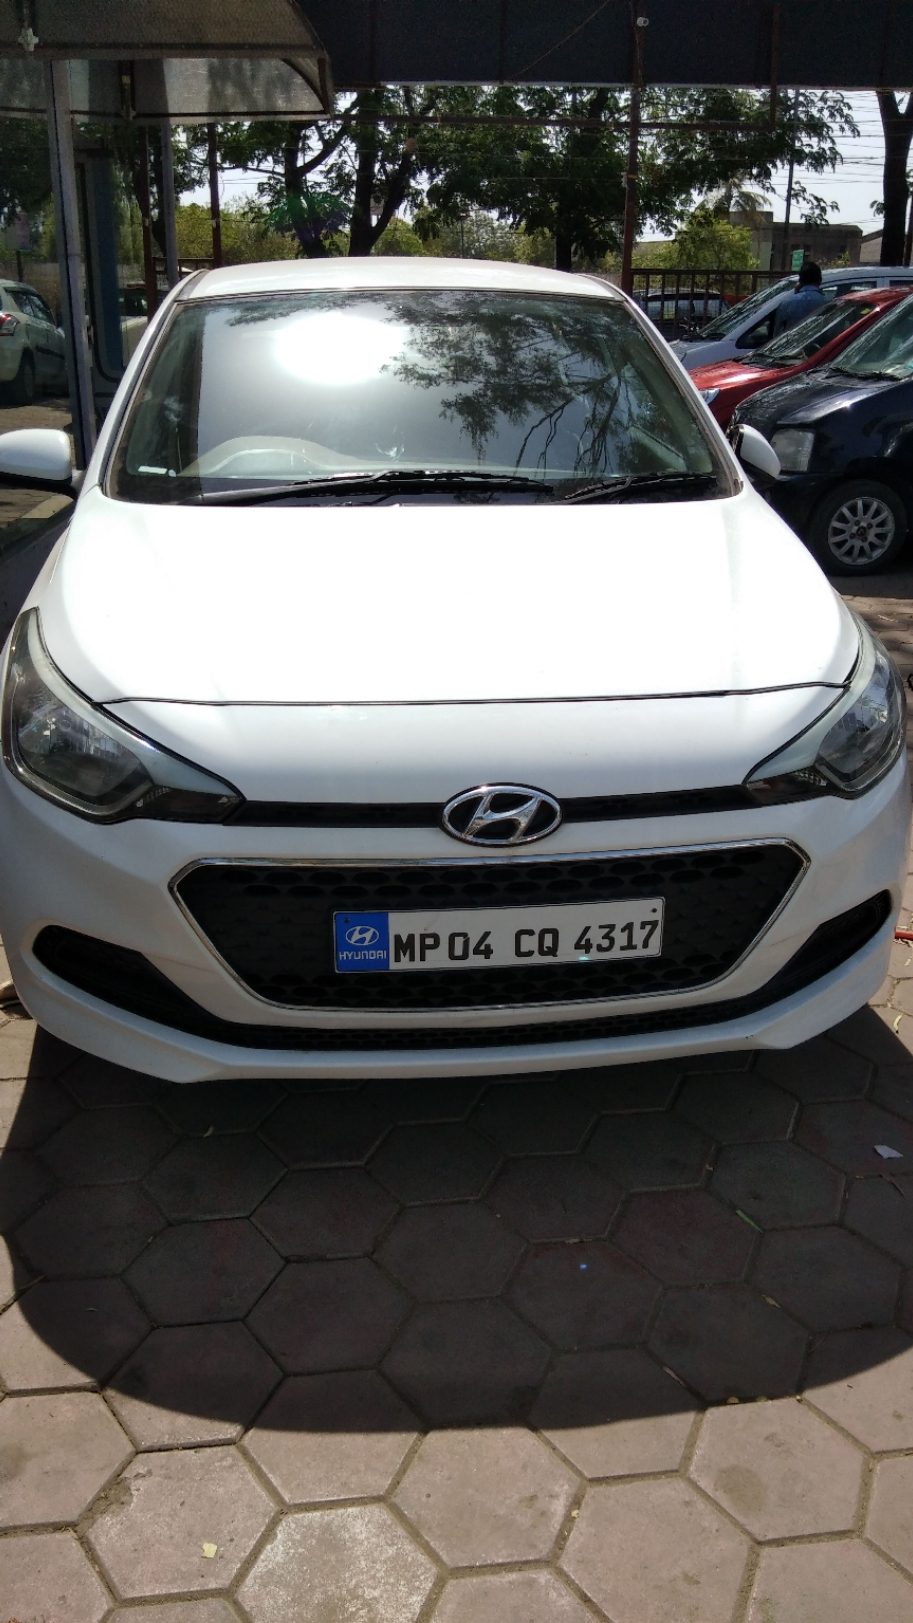 Used Cars In Bhopal - Second Hand Cars For Sale - Used Cars - MFCWL